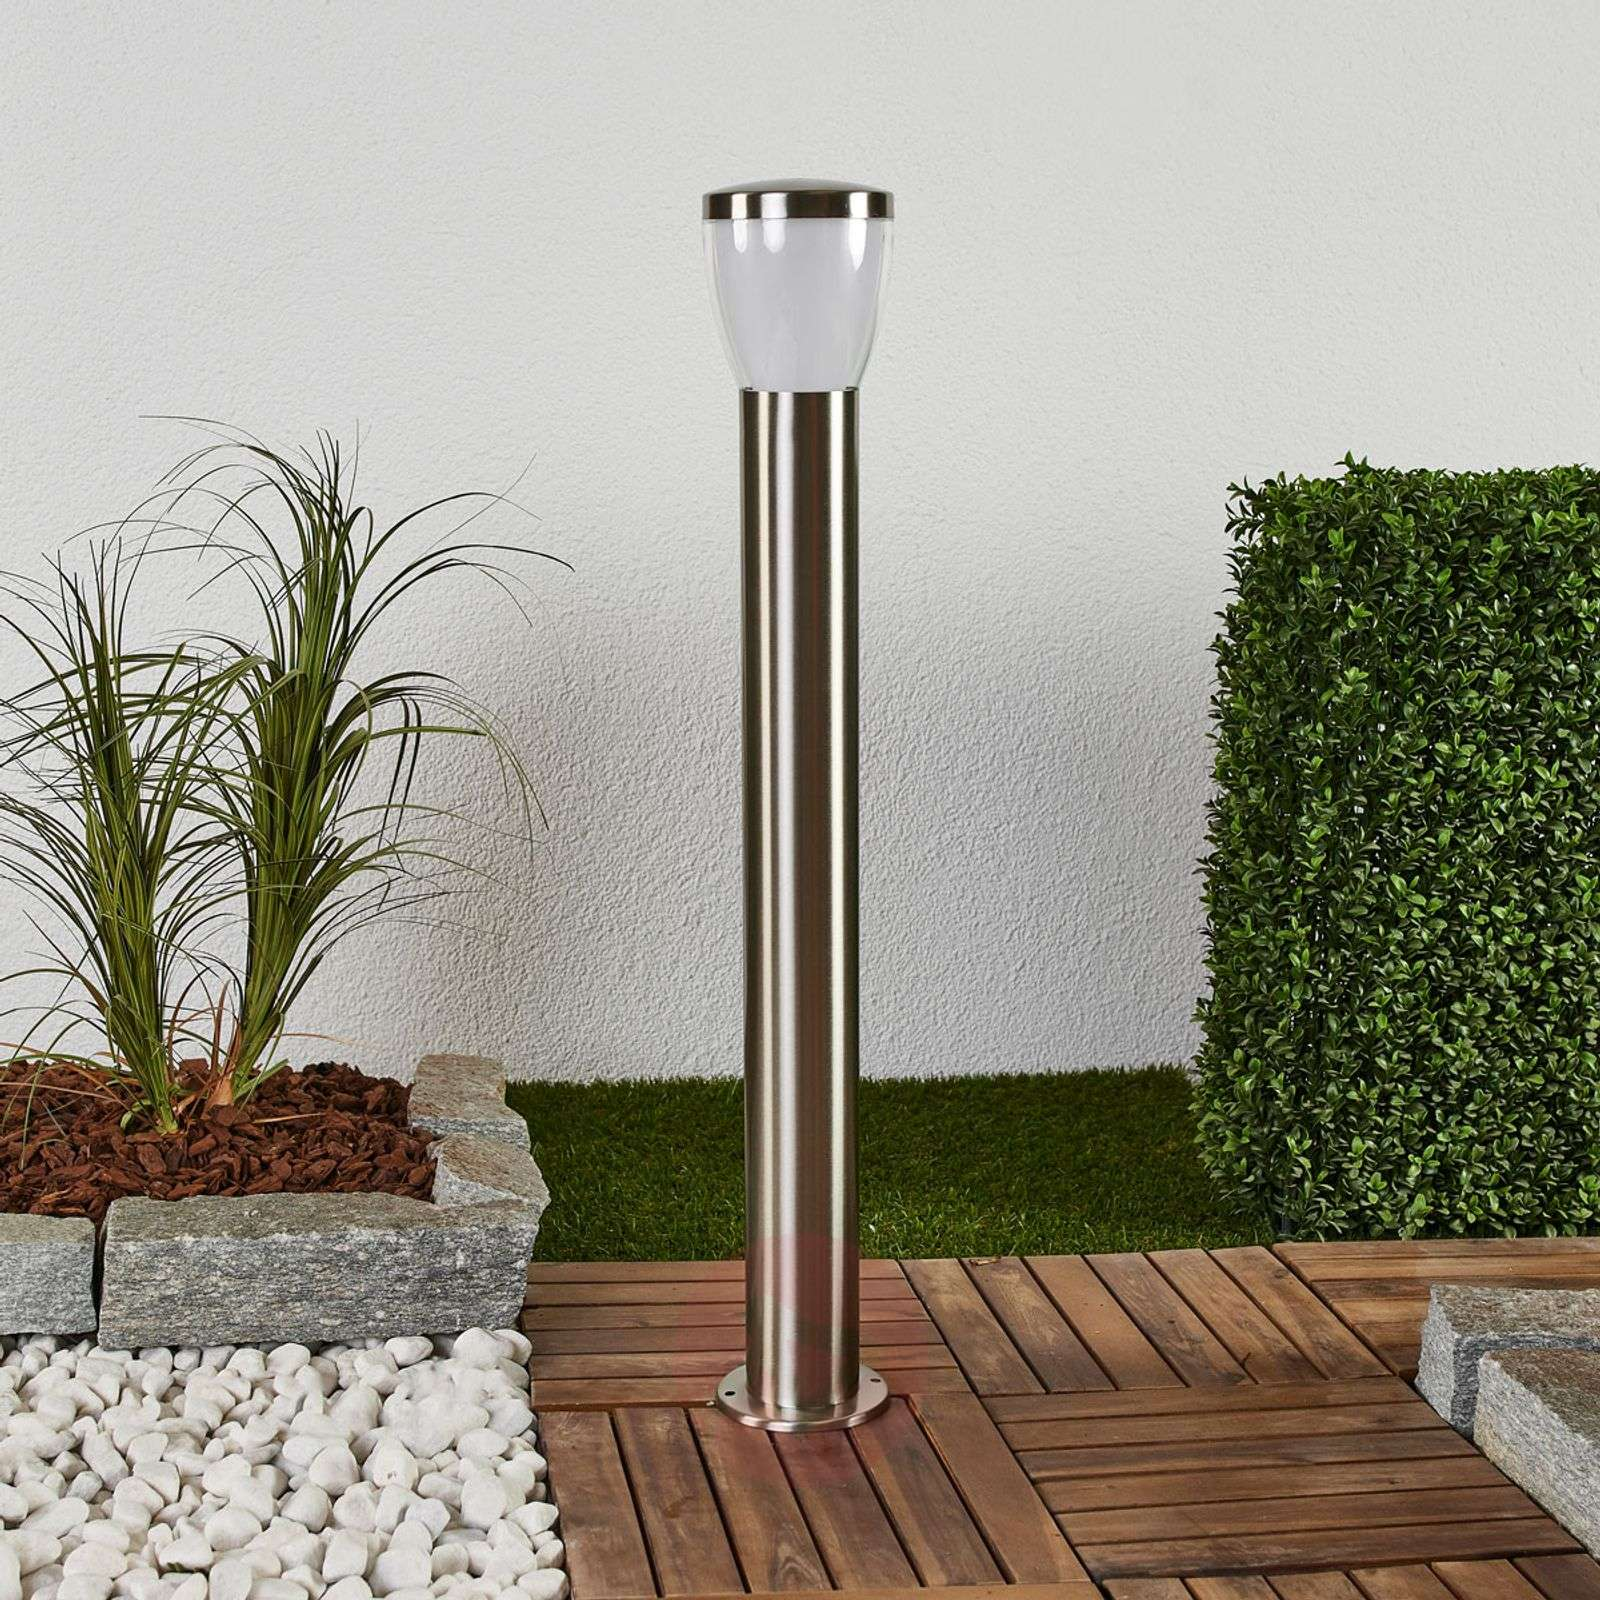 Selma LED path lamp in a modern design-9647088-01